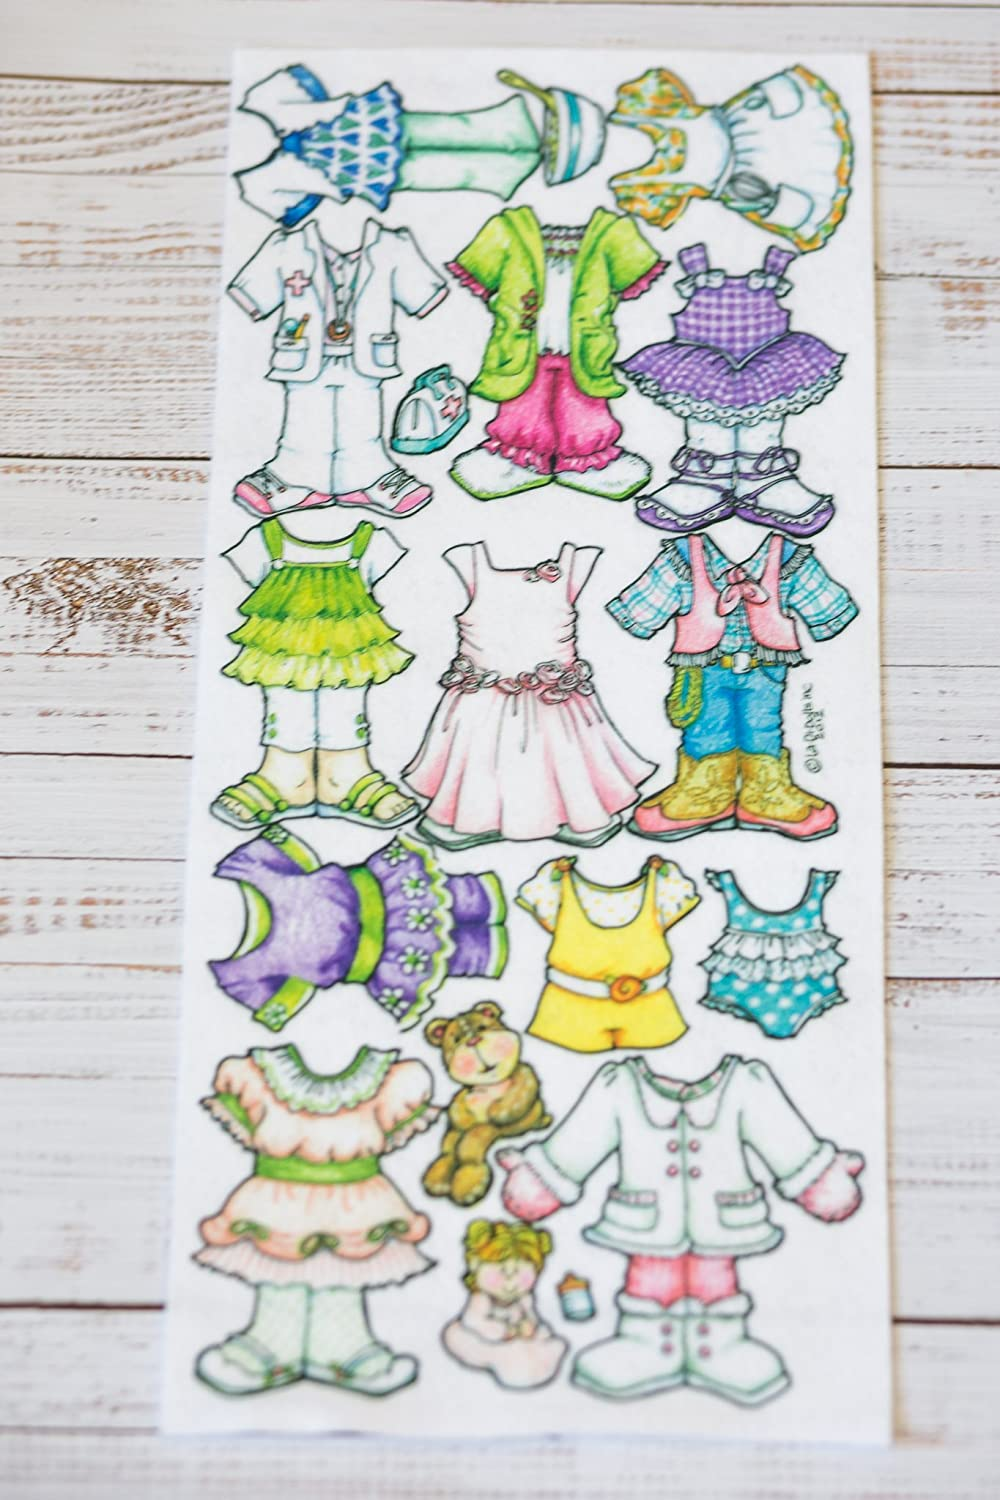 Just For Girls Clothing - Extra clothes for the 7' Book Baby - La-Di-Doll.